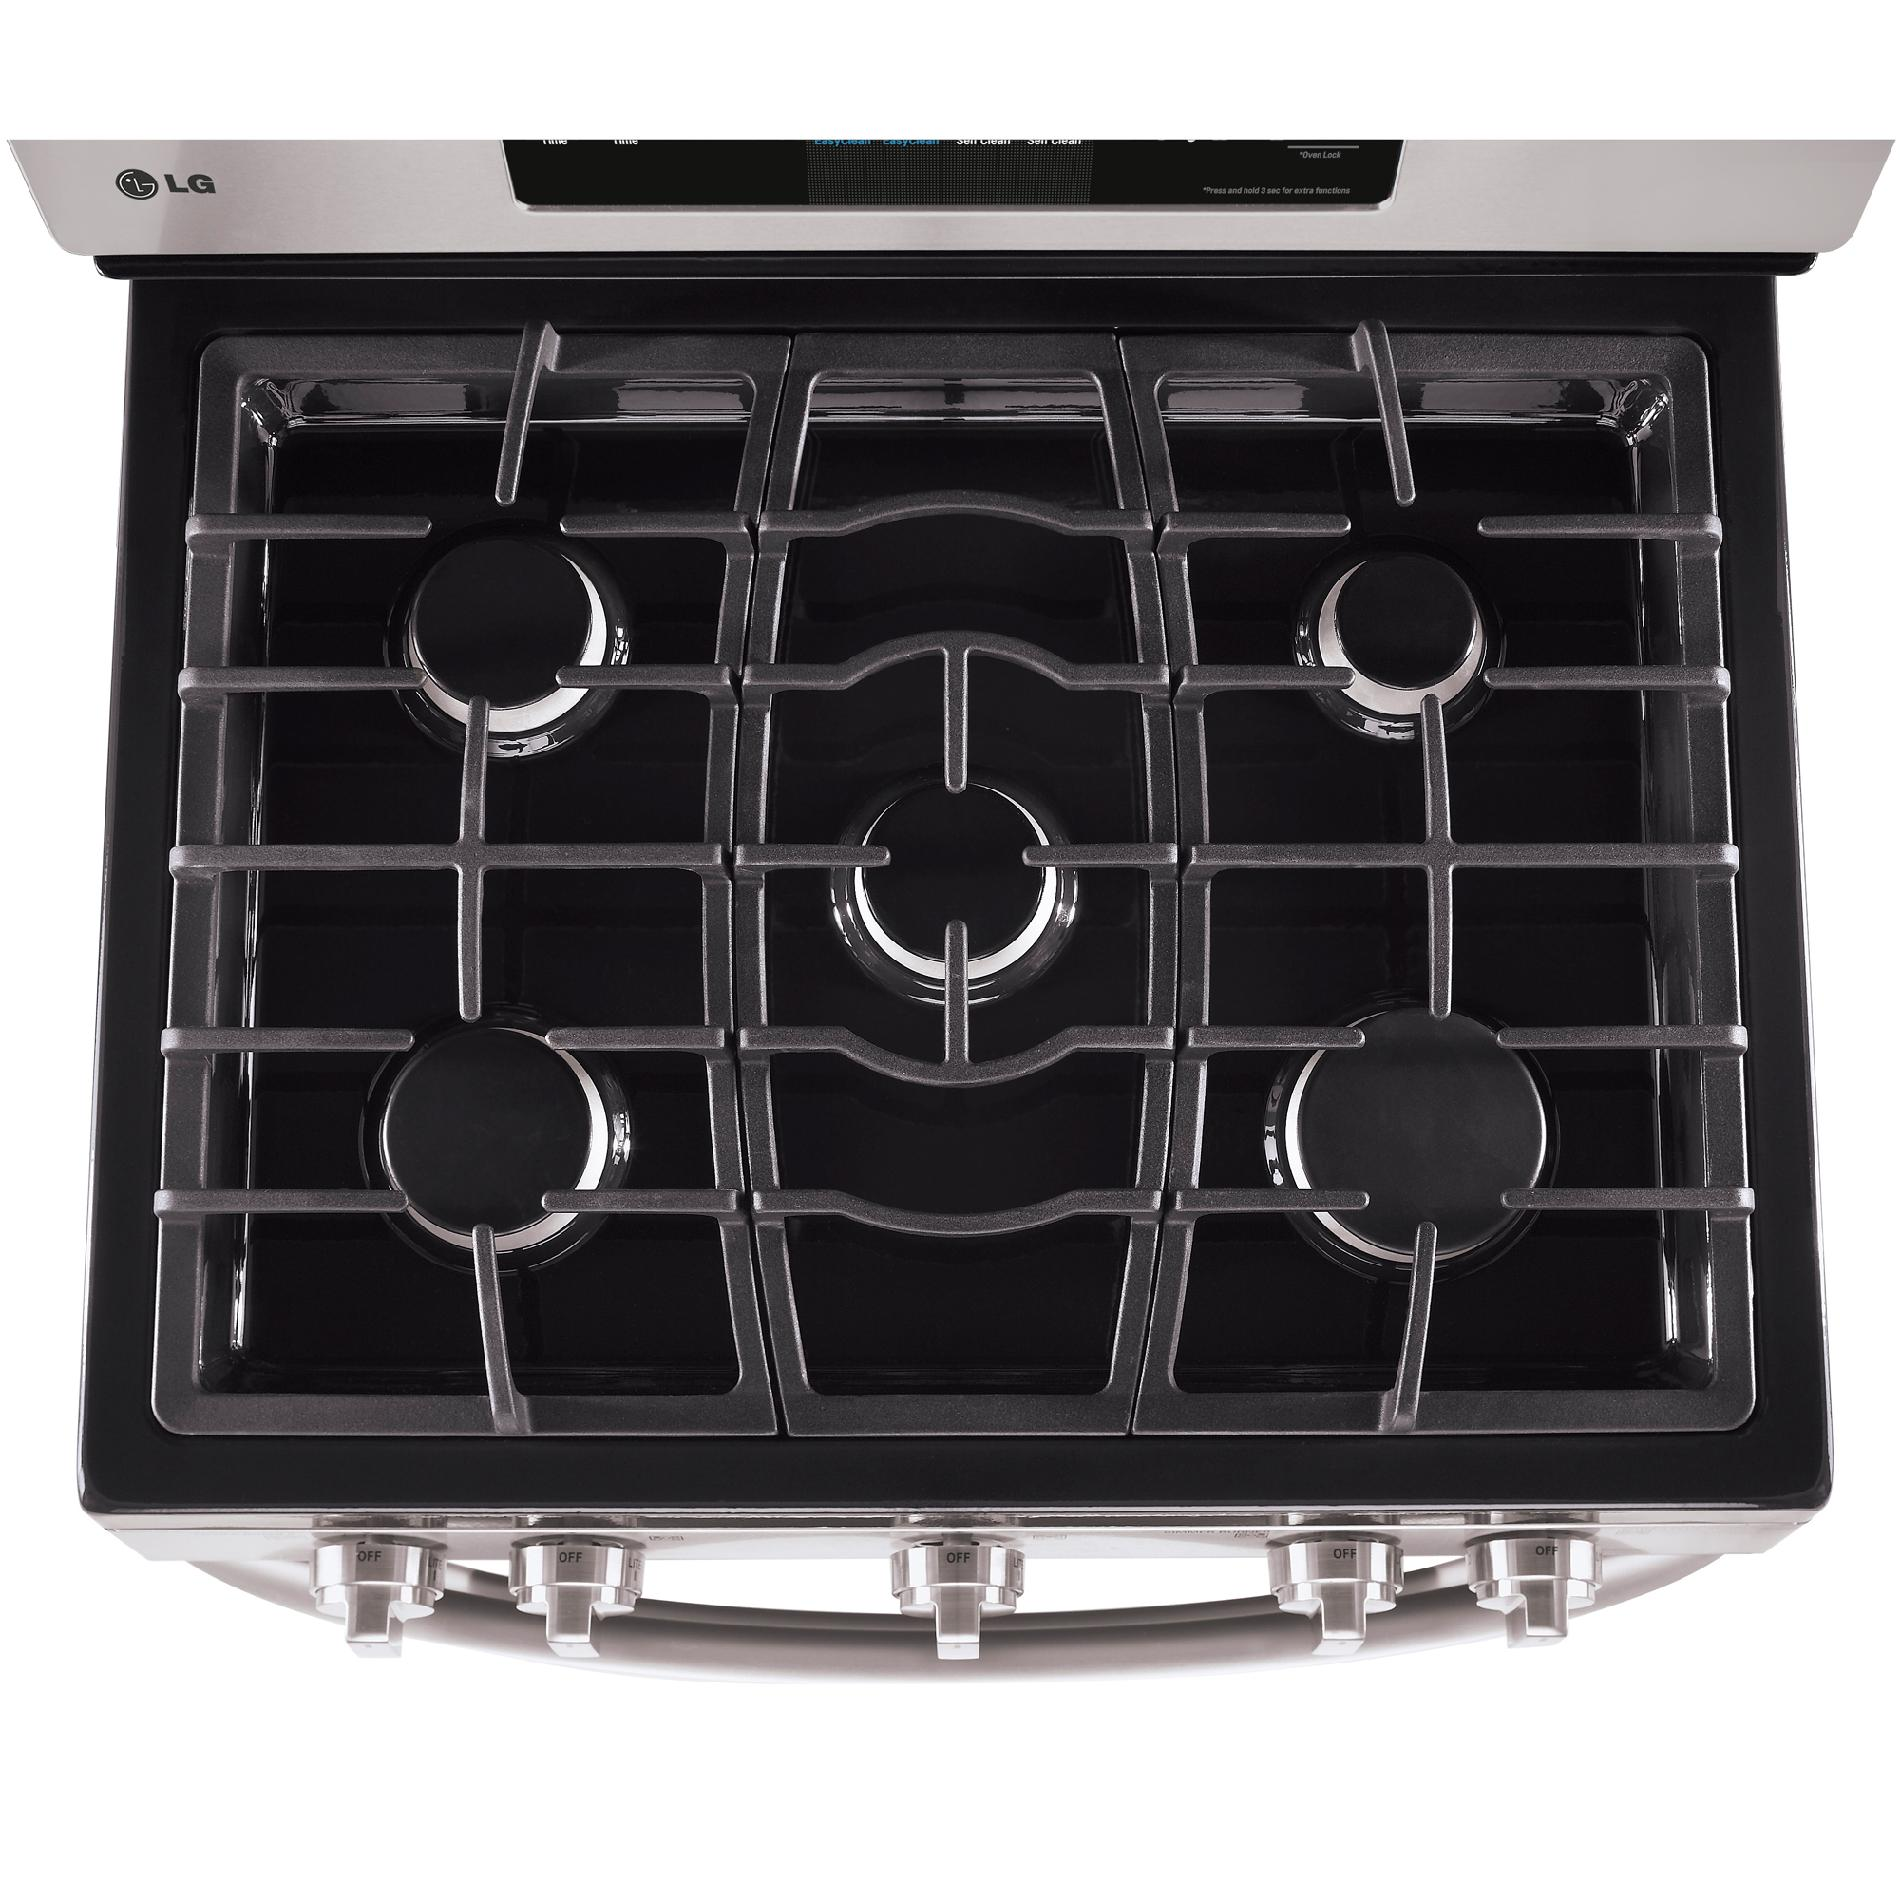 LG 6.1 cu. ft. Double-Oven Gas Range w/EasyClean™ - Stainless Steel